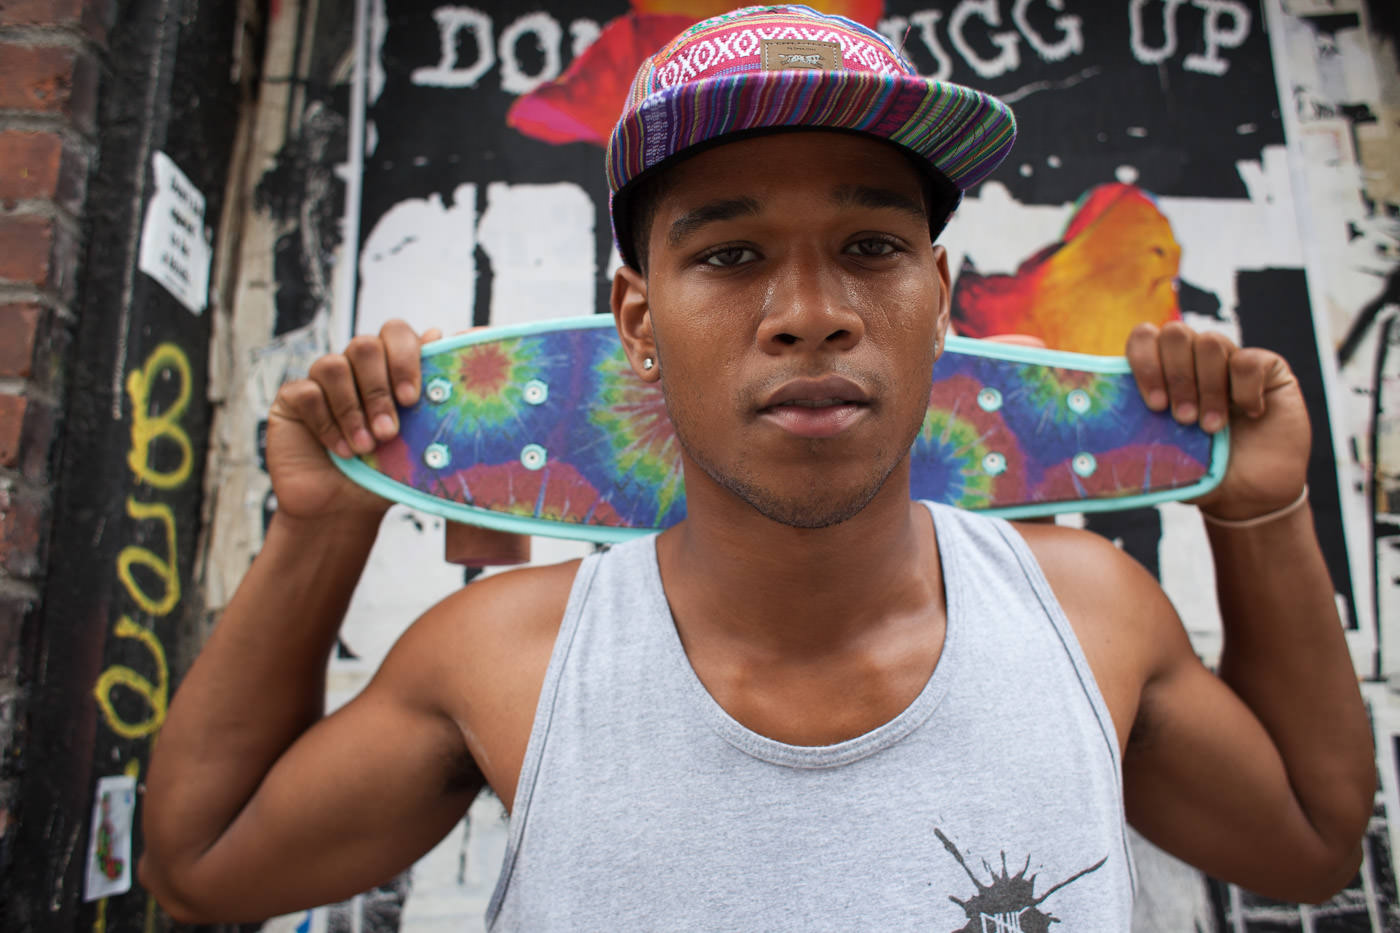 Street photography: Portrait of young man holding skateboard behind his head